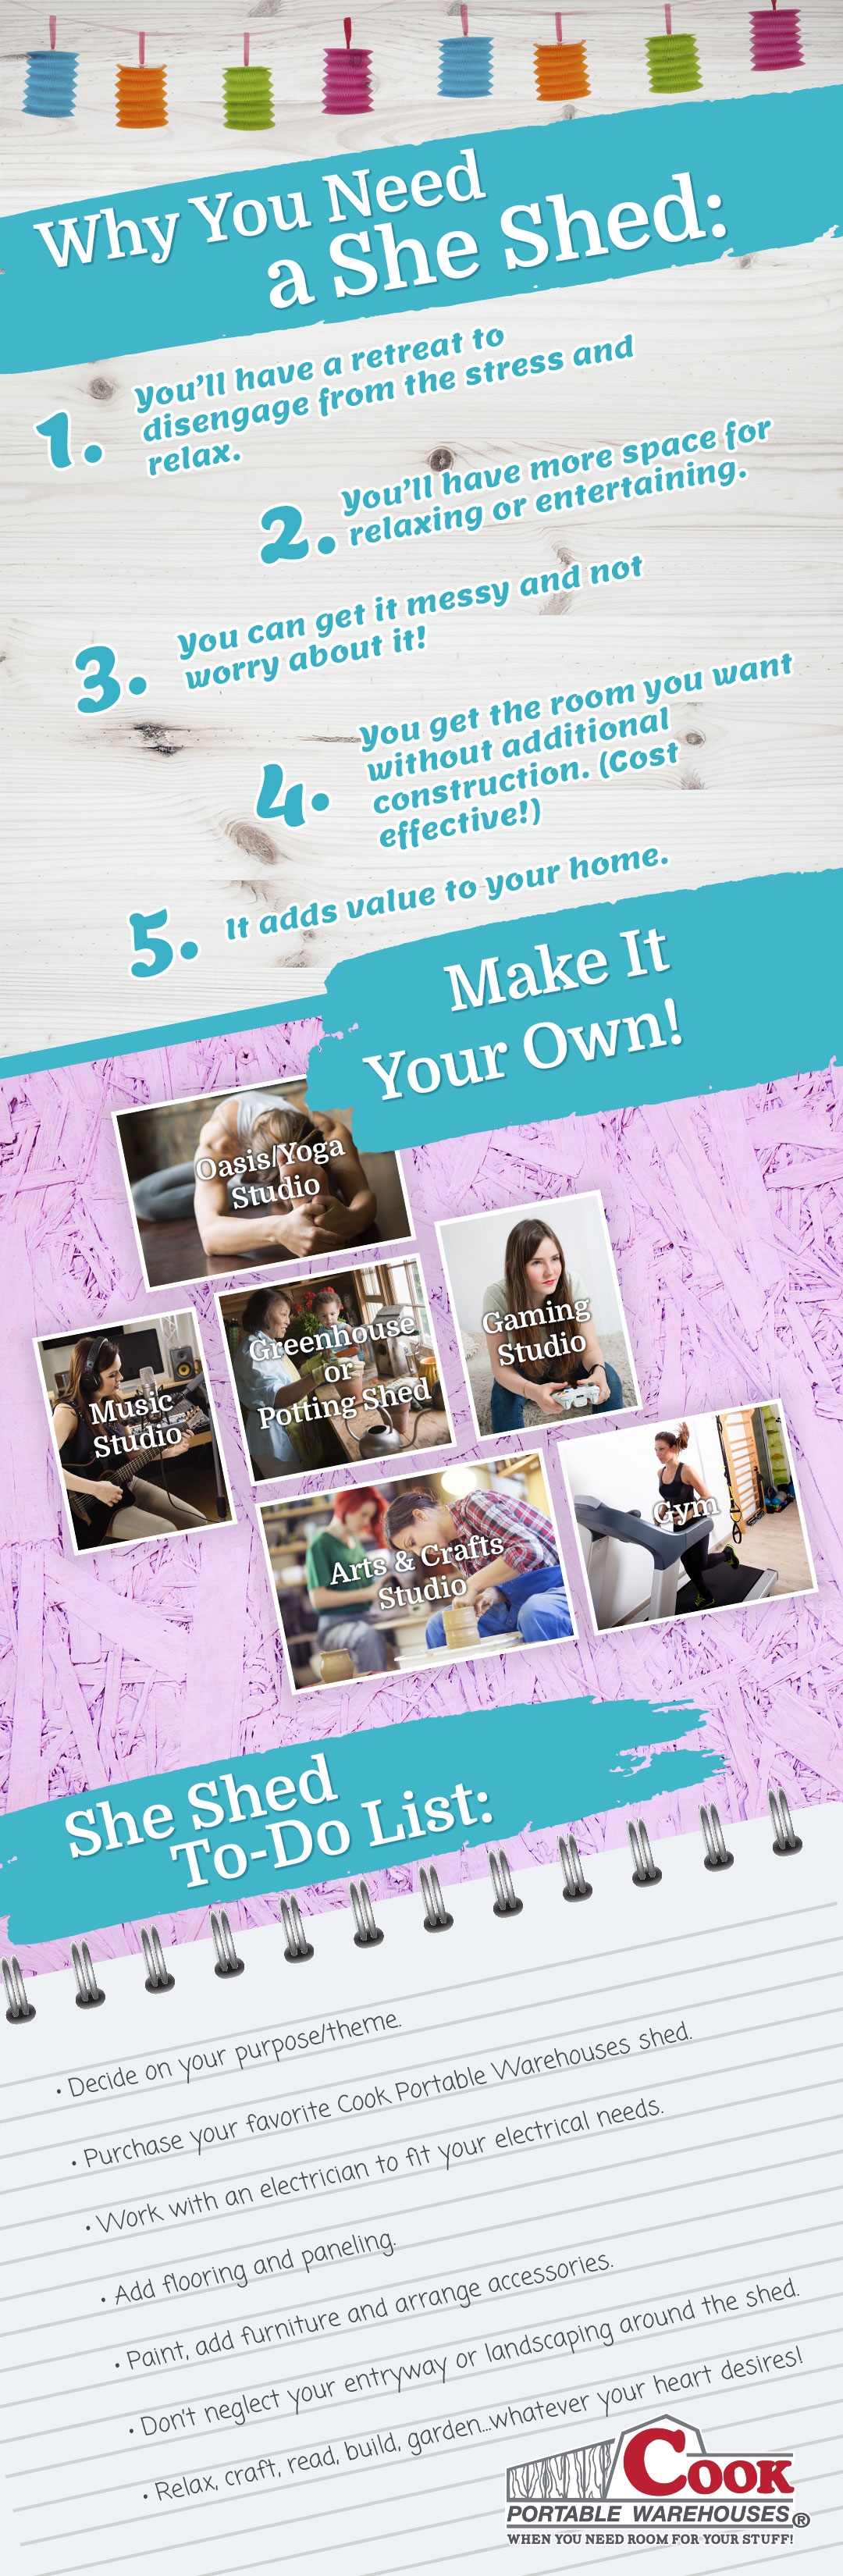 What you need for your she shed Infographic